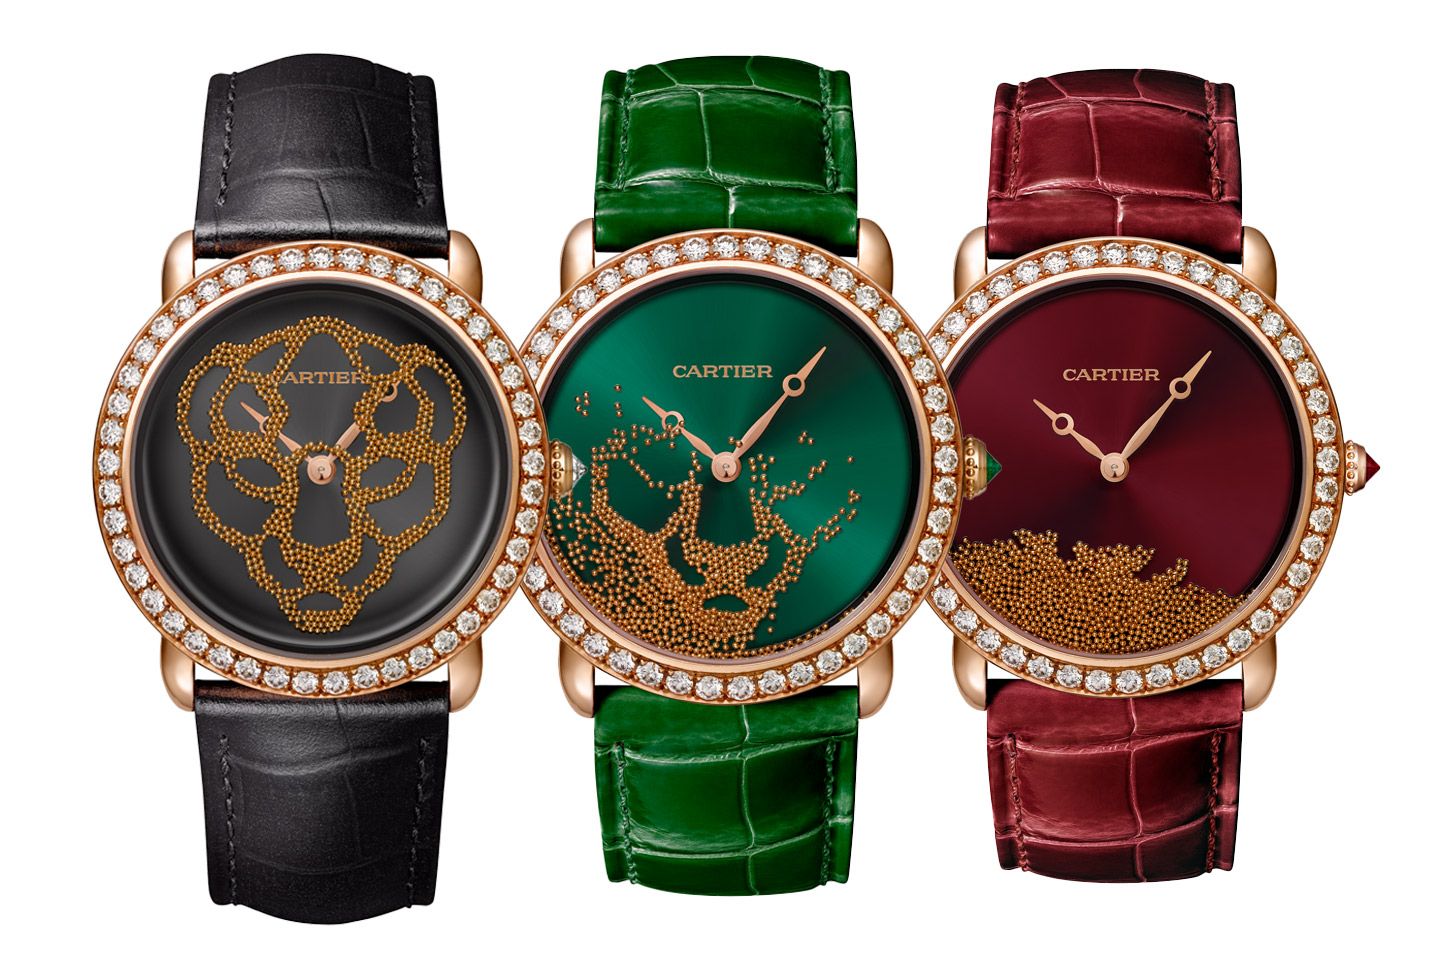 Cartier 'Révélation d'une Panthère' watches in varying colours - all with 37mm bezel set diamond 18k pink gold bezel, gold beads and alligator strap